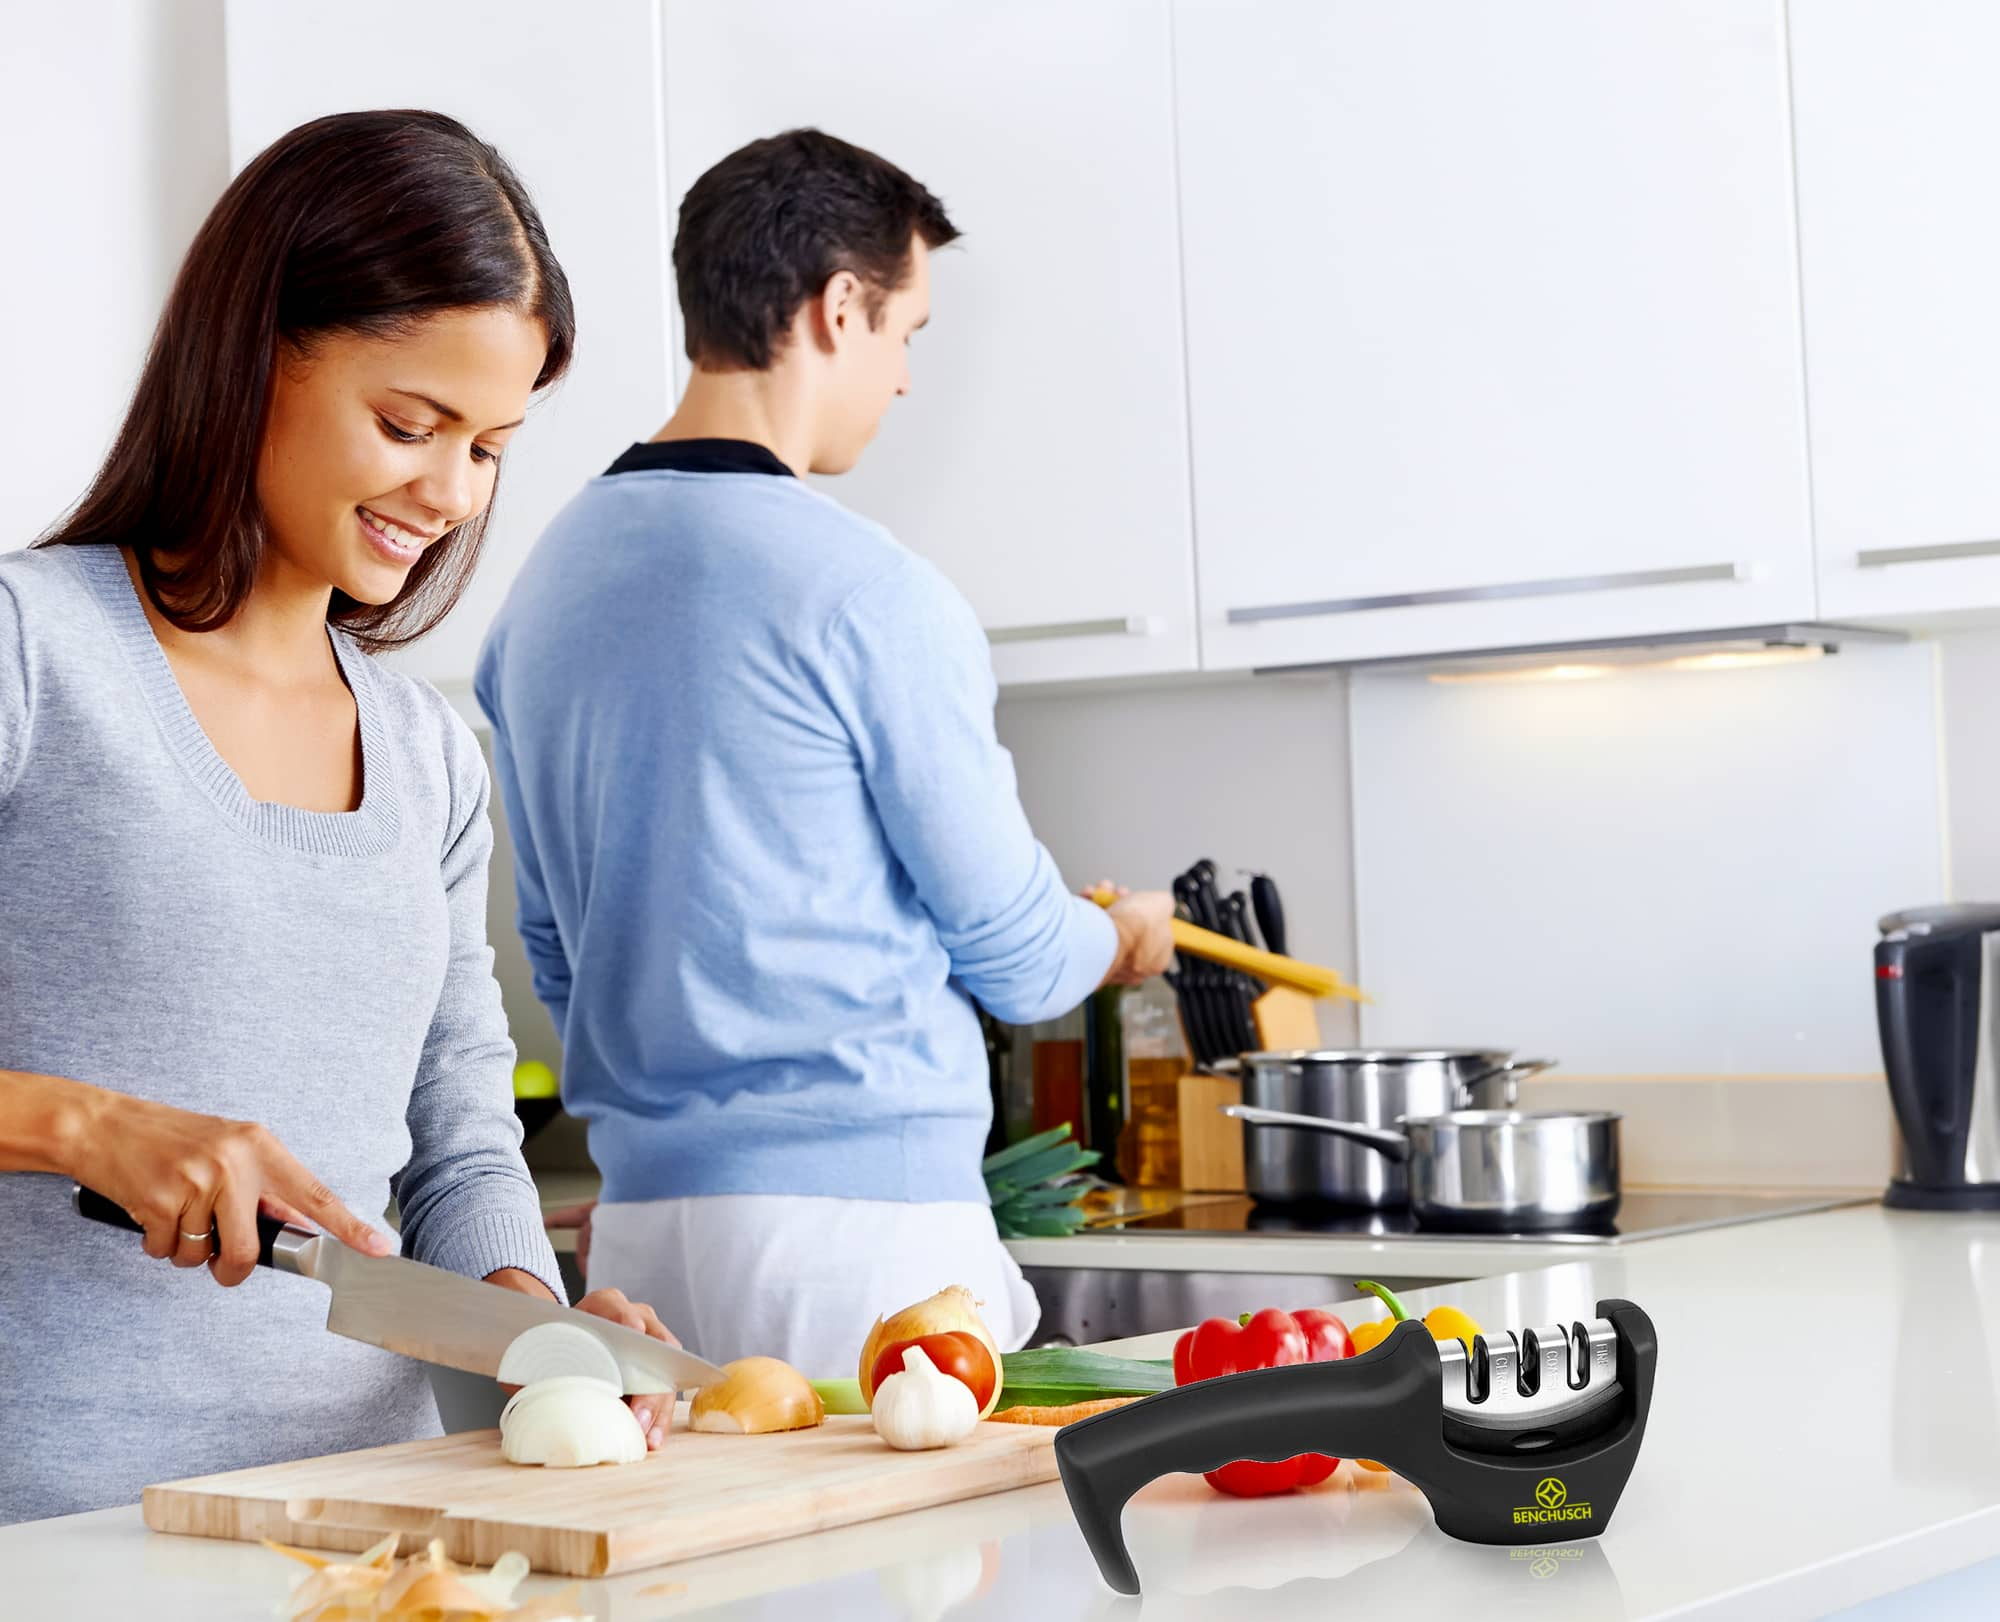 Benchusch Three-Stage Knife Sharpener on table with happy couples are cooking in the kitchen background